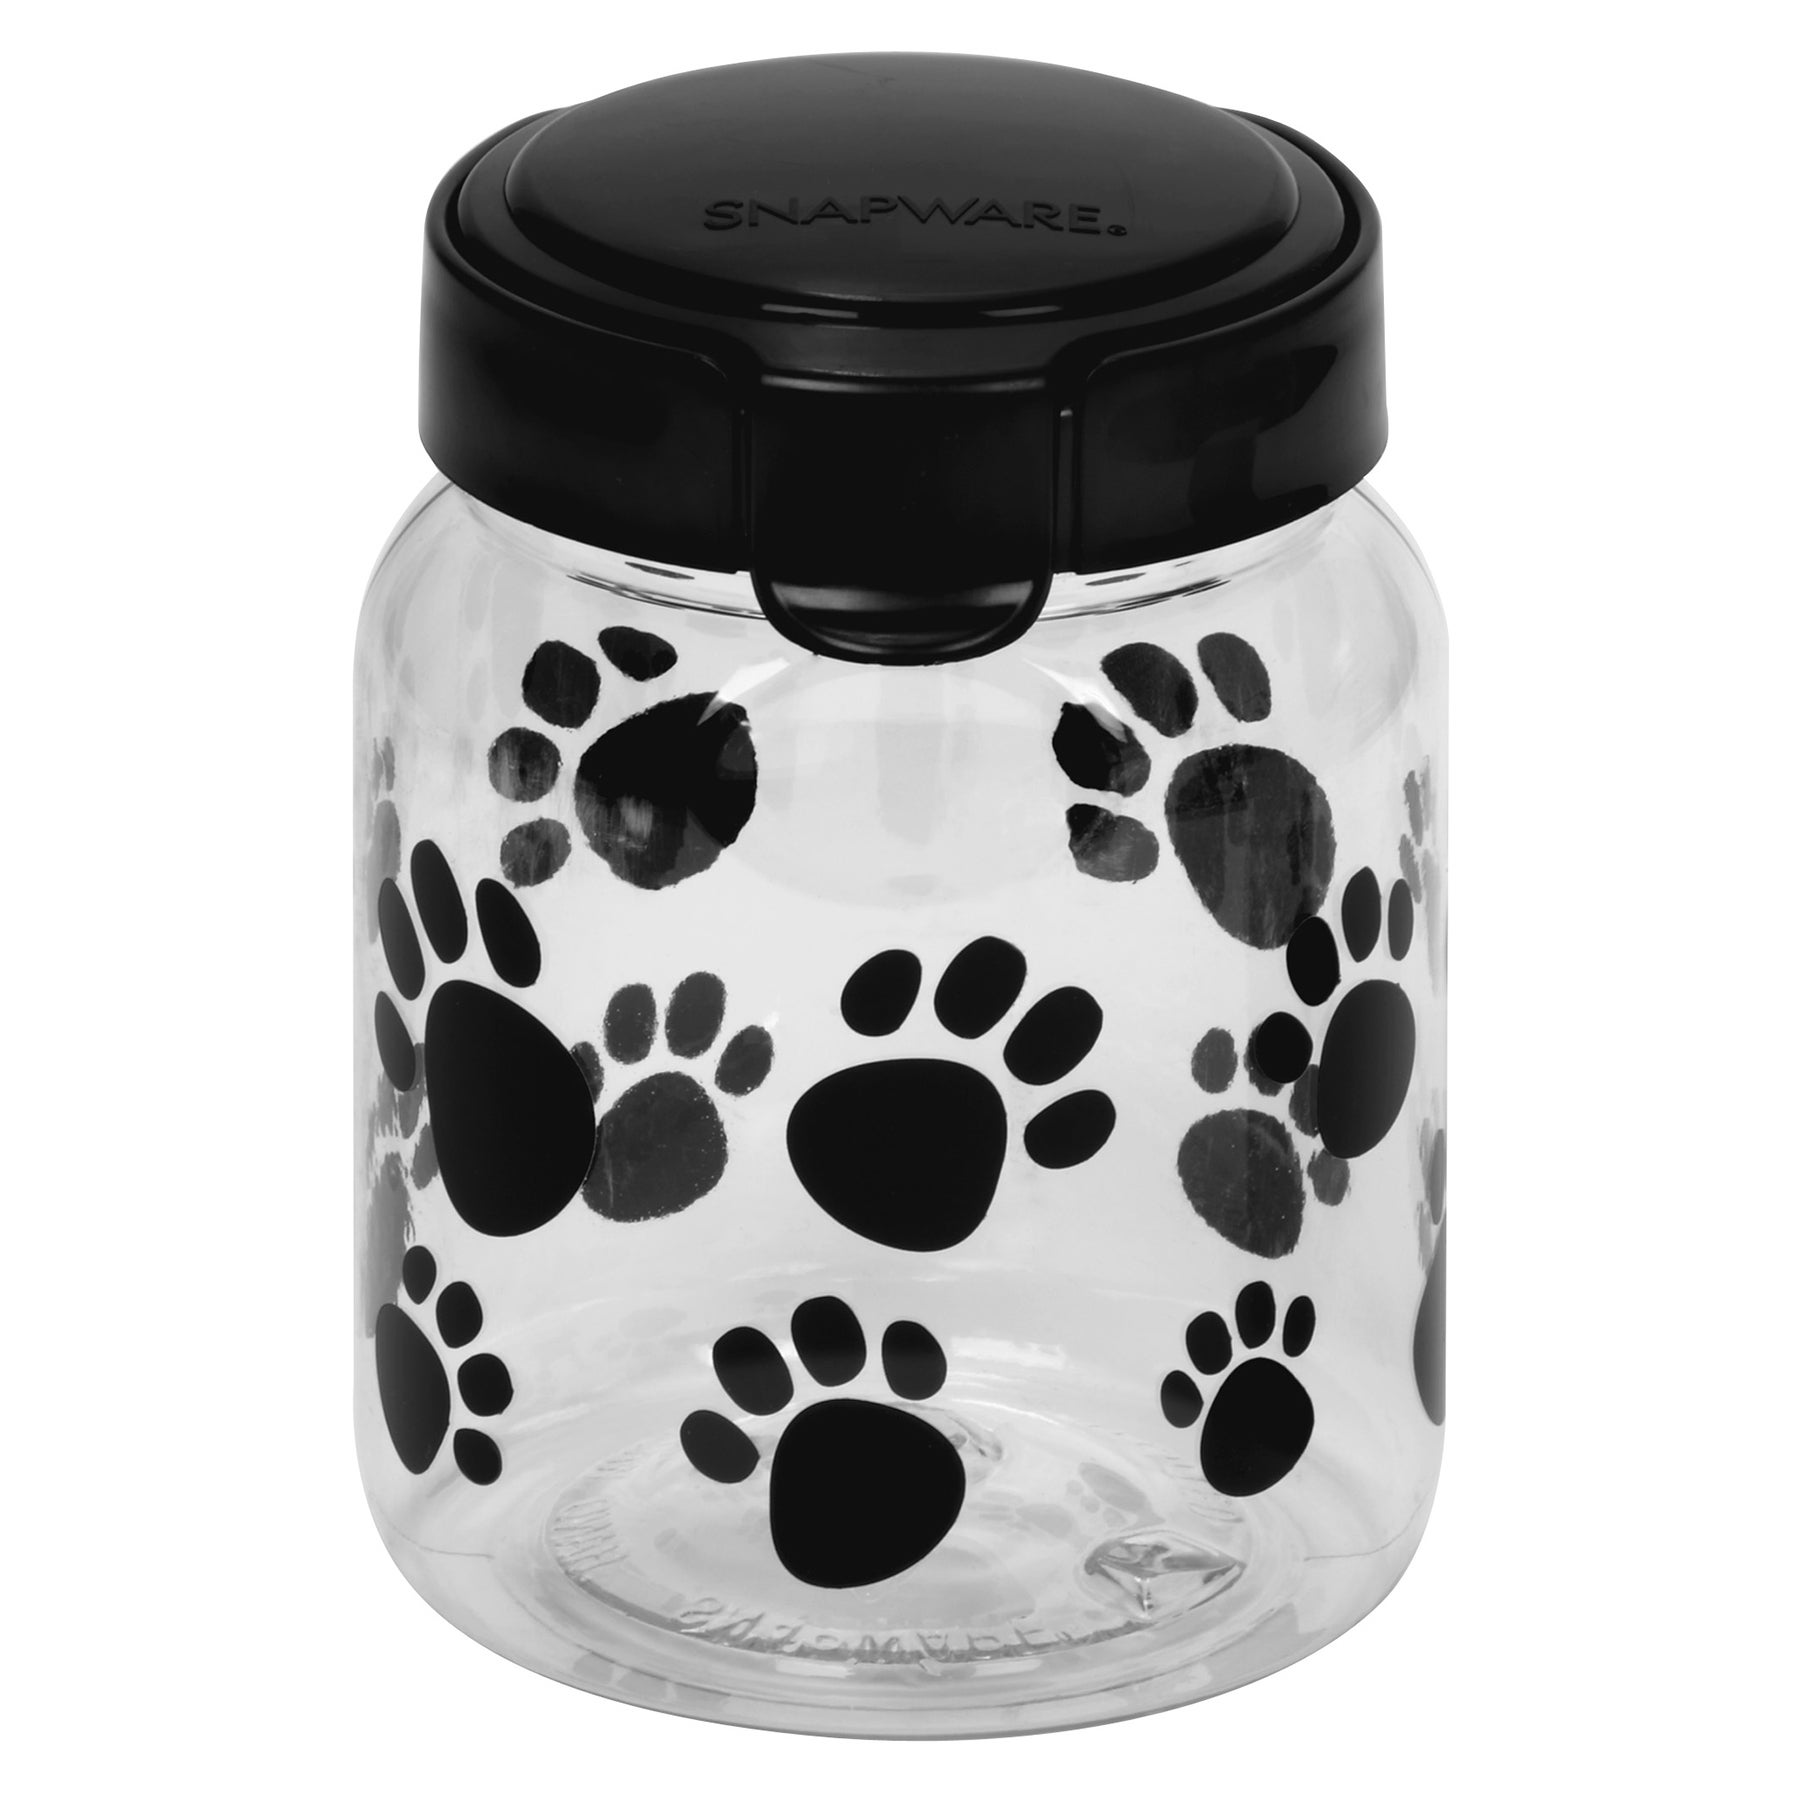 Snapware 1098566 4-1/10 Cup Paw Print Pet Treat Canister ...